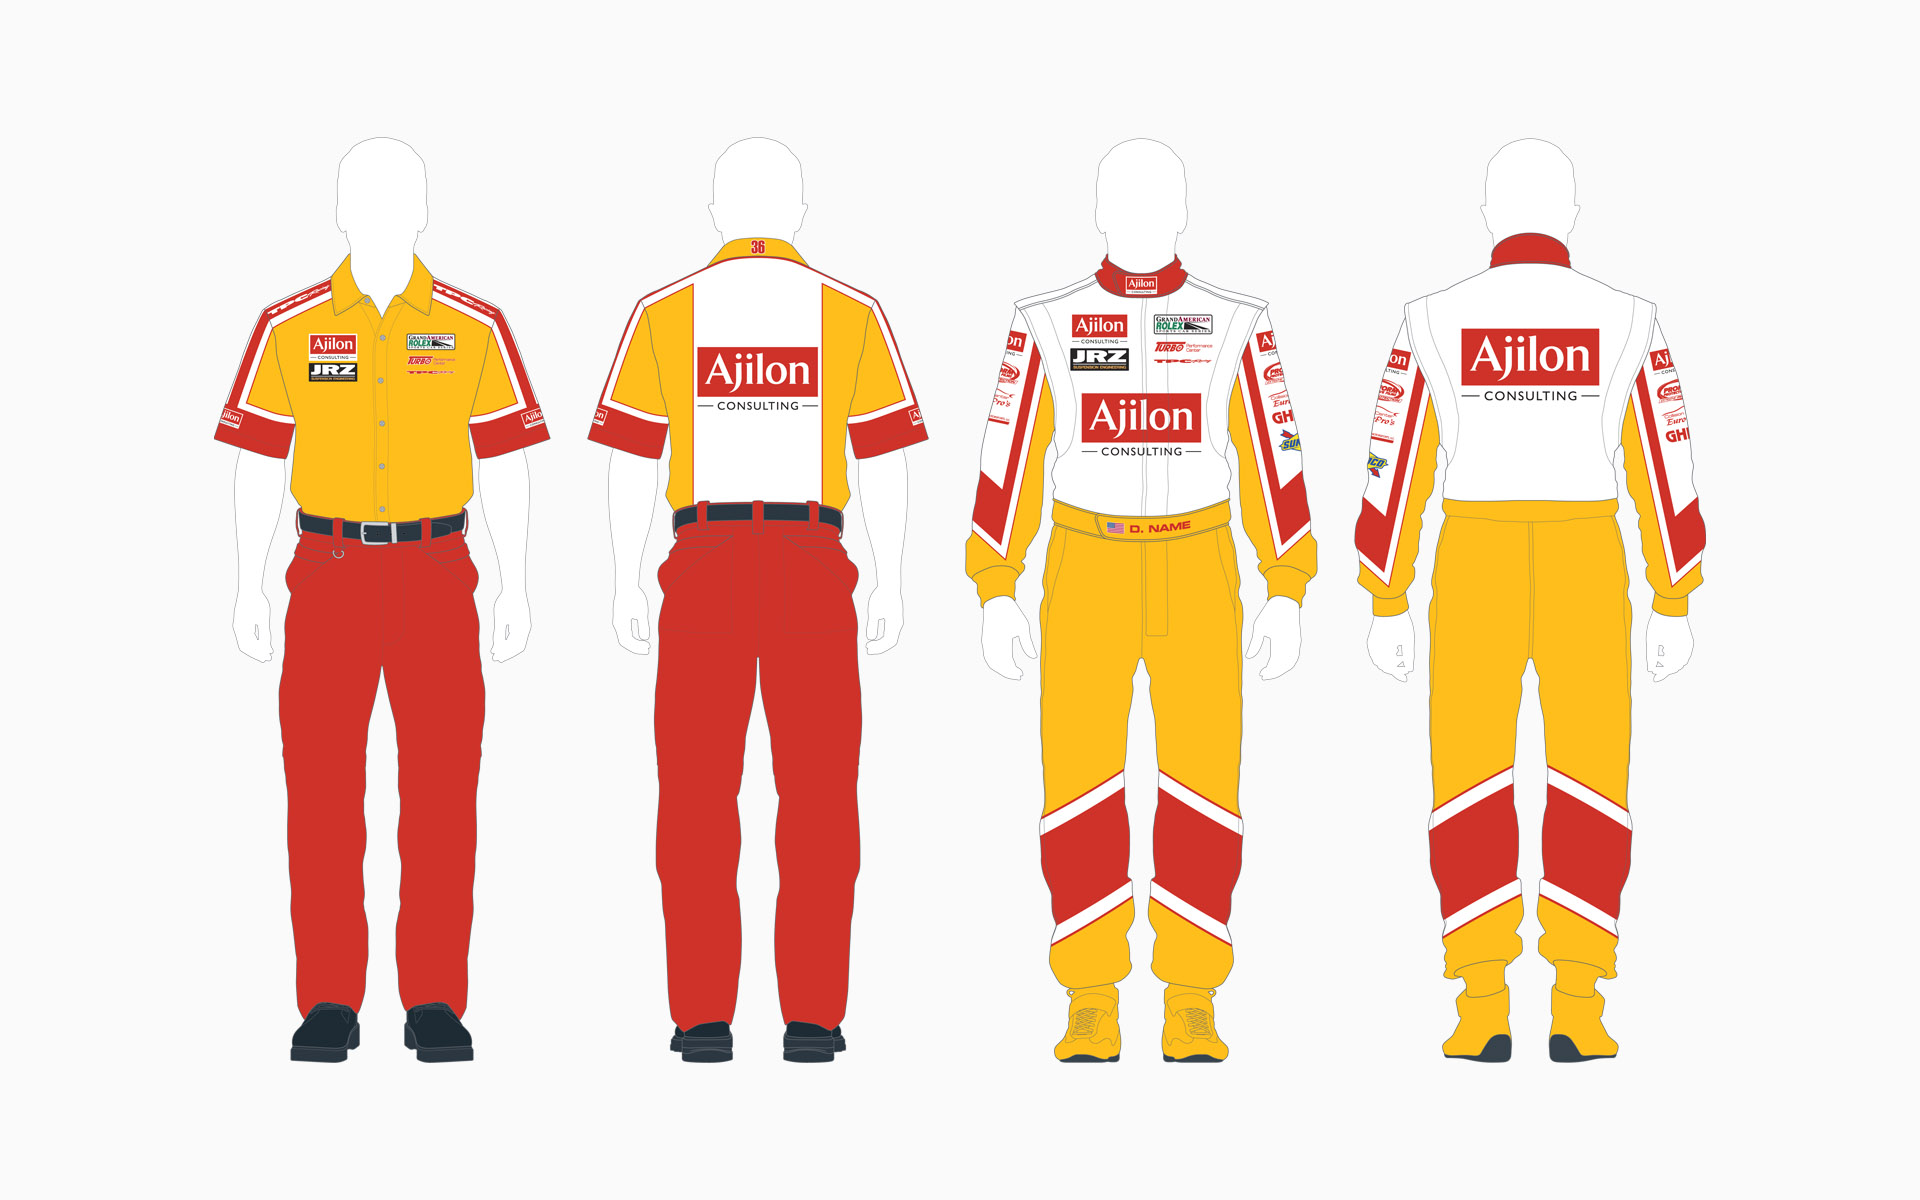 2005 TPC Racing Ajilon Consulting Crew Shirt and Firesuit